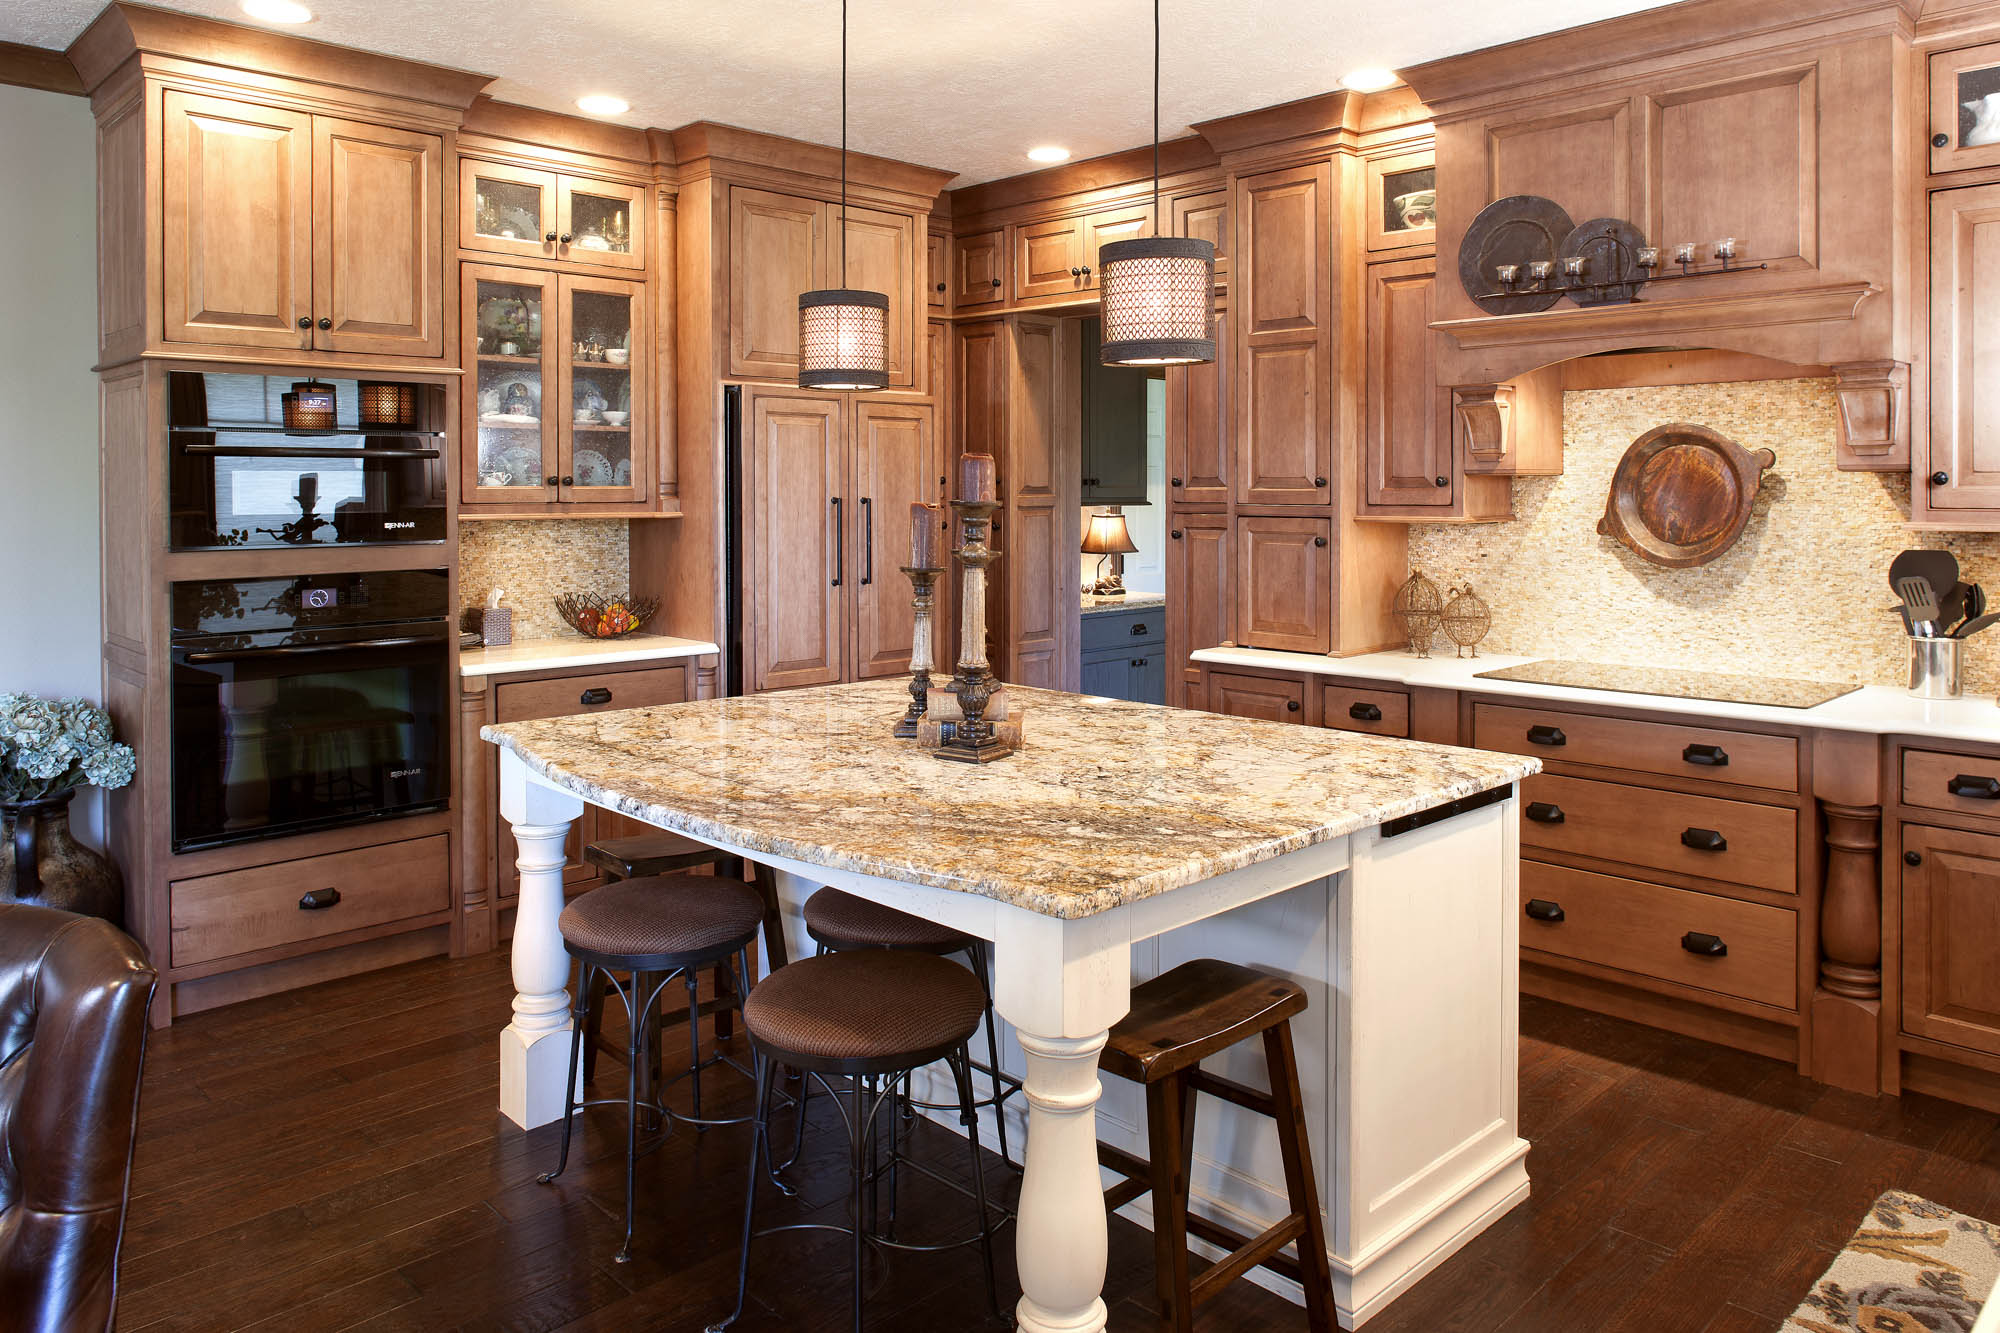 Stained kitchen cabinets in Vintage Nutmeg by Showplace Cabinetry - view 2